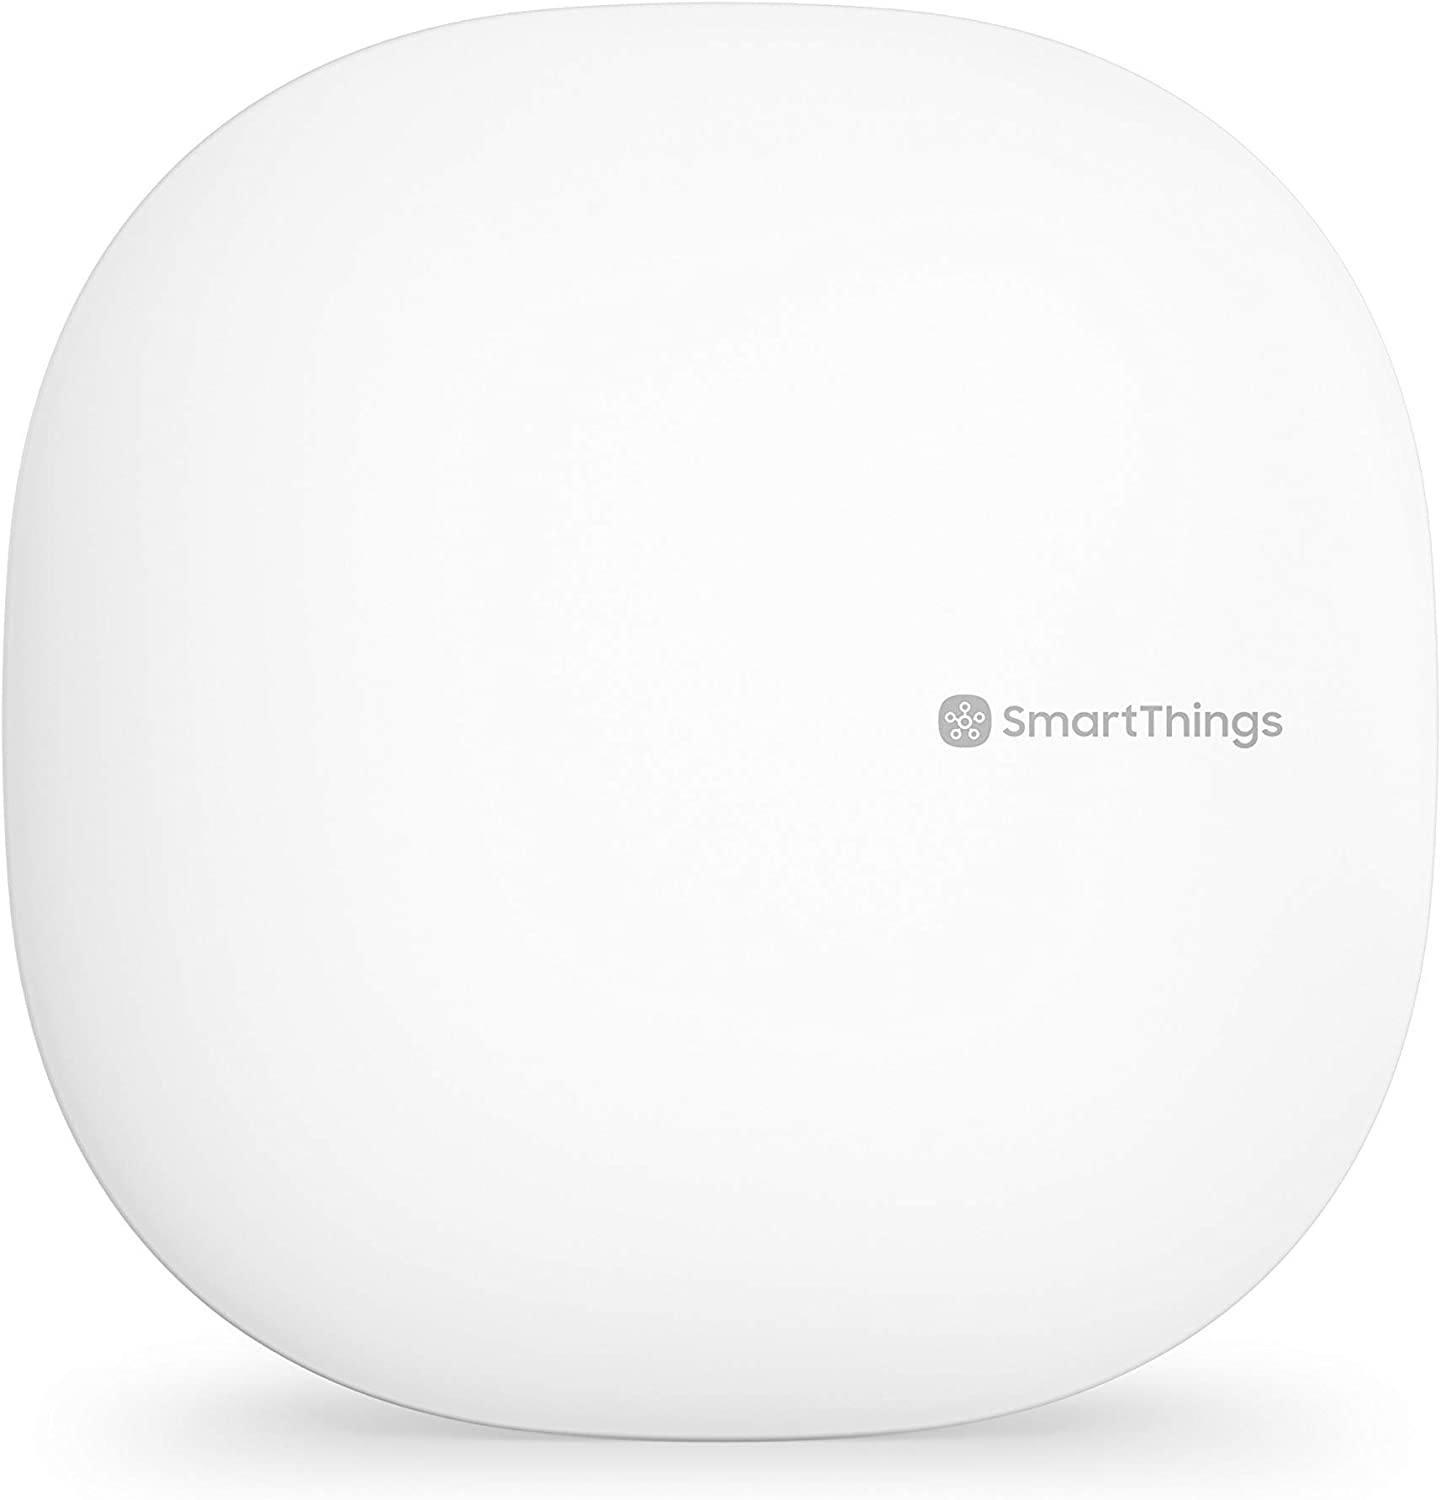 Samsung SmartThings Hub 3rd Generation [GP-U999SJVLGDA] Smart Home Automation Hub Home Monitoring Smart Devices - Alexa Google Home Compatible - White (Renewed)